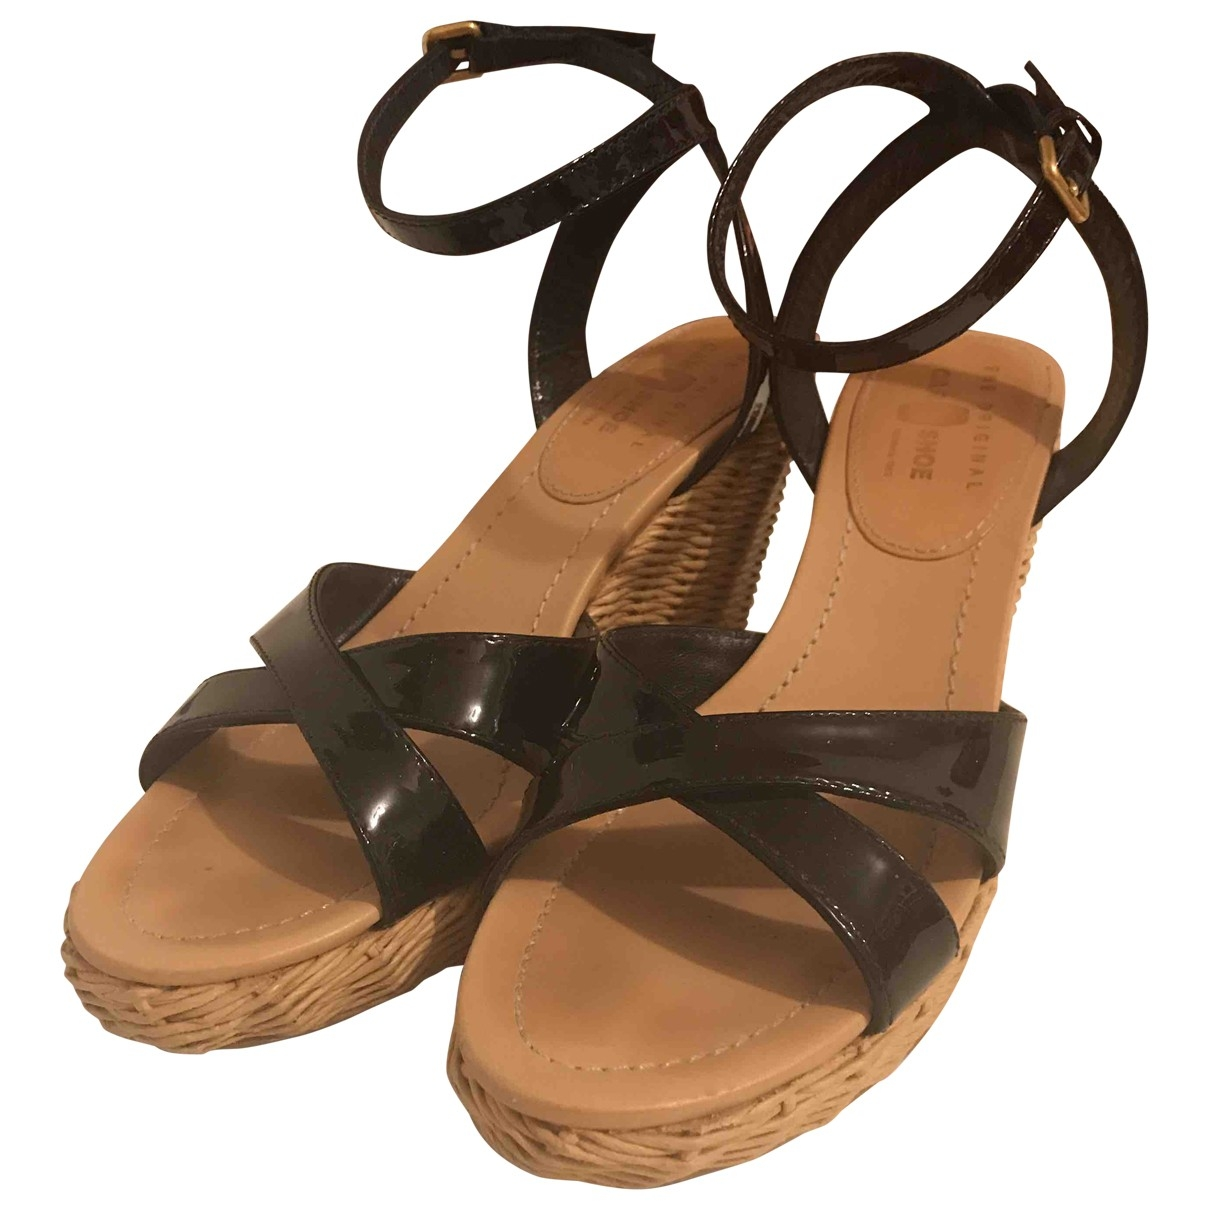 Carshoe \N Black Patent leather Sandals for Women 39 EU